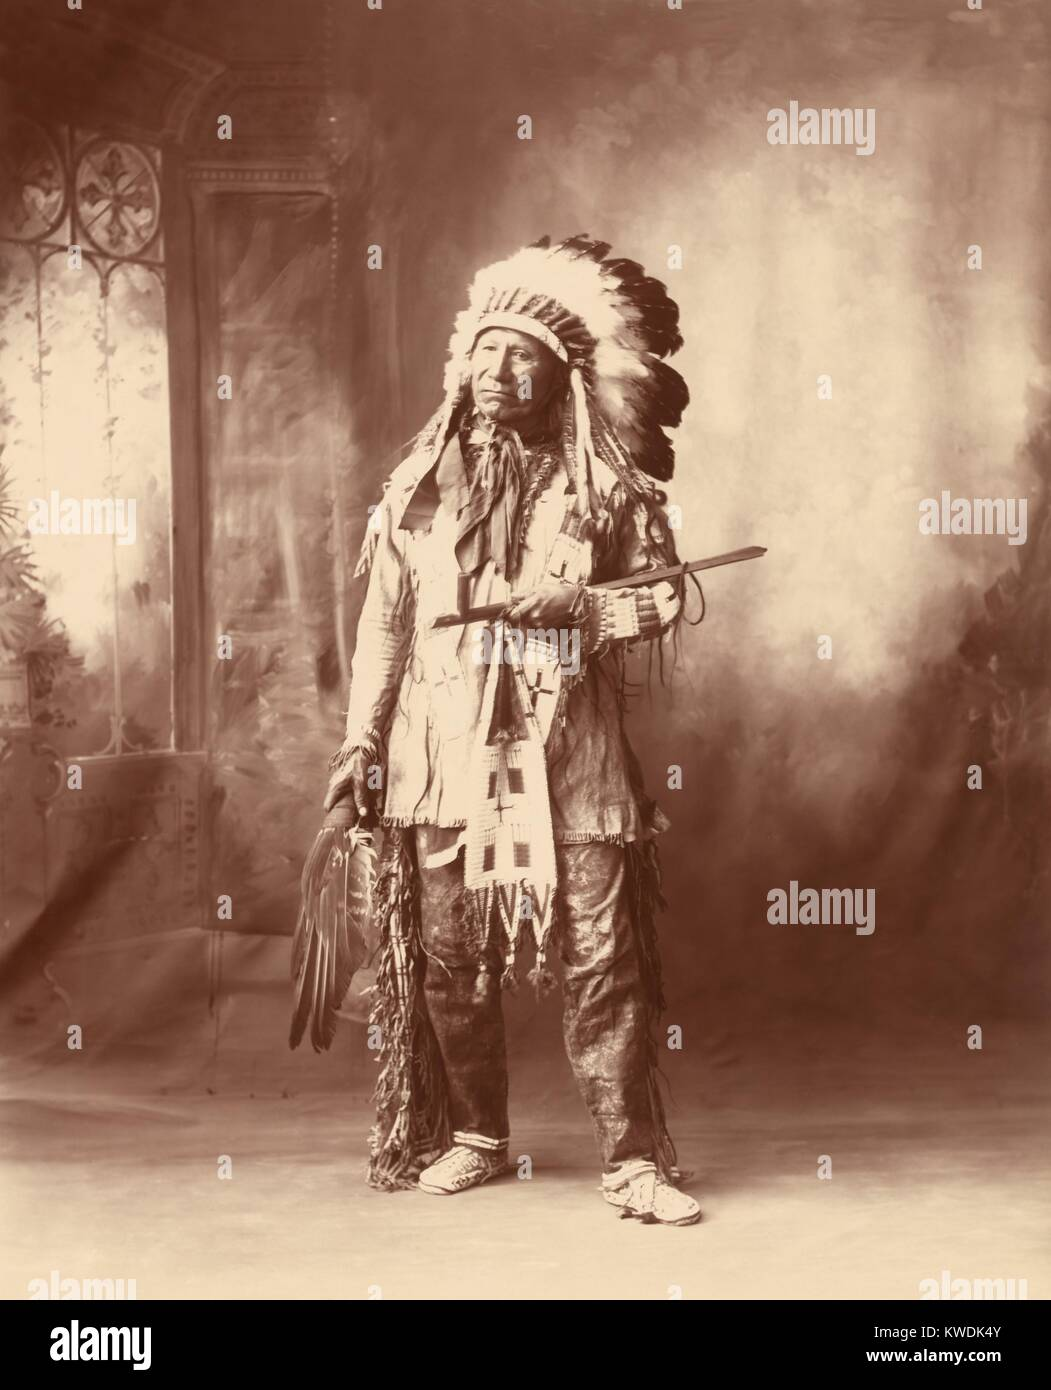 Chief American Horse, Oglala division of Lakota, a progressive Native American. He was a Scout for the US Army, - Stock Image